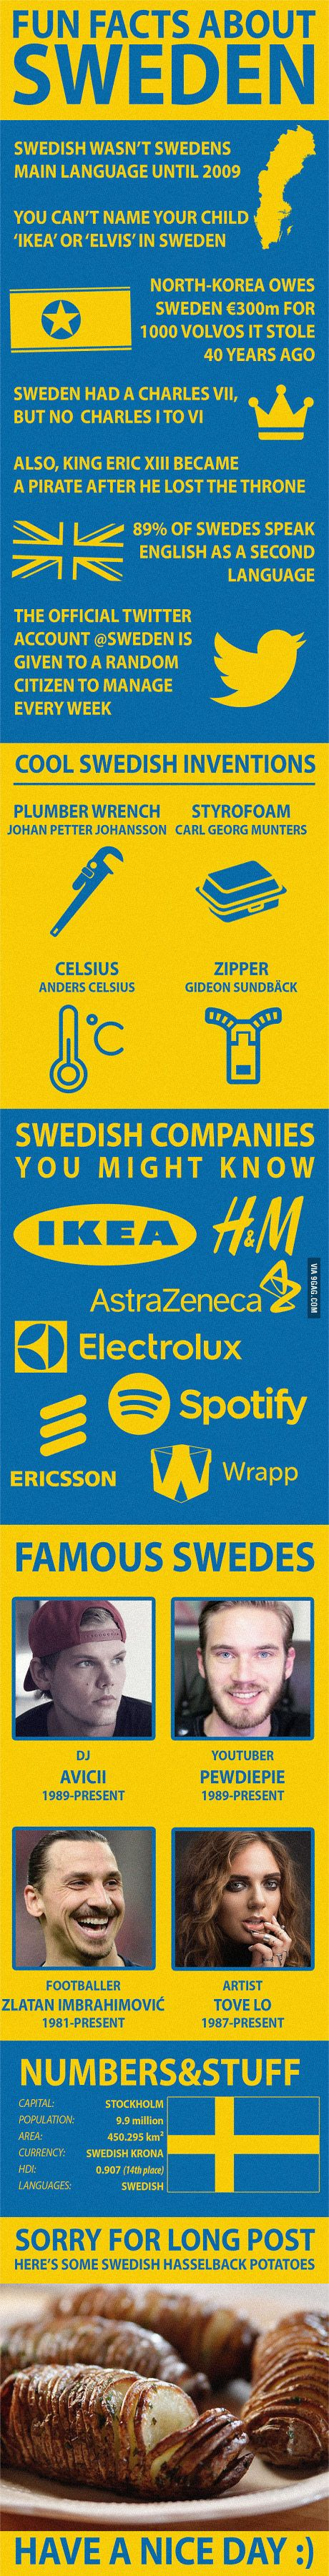 best fun facts about countries images on pinterest random